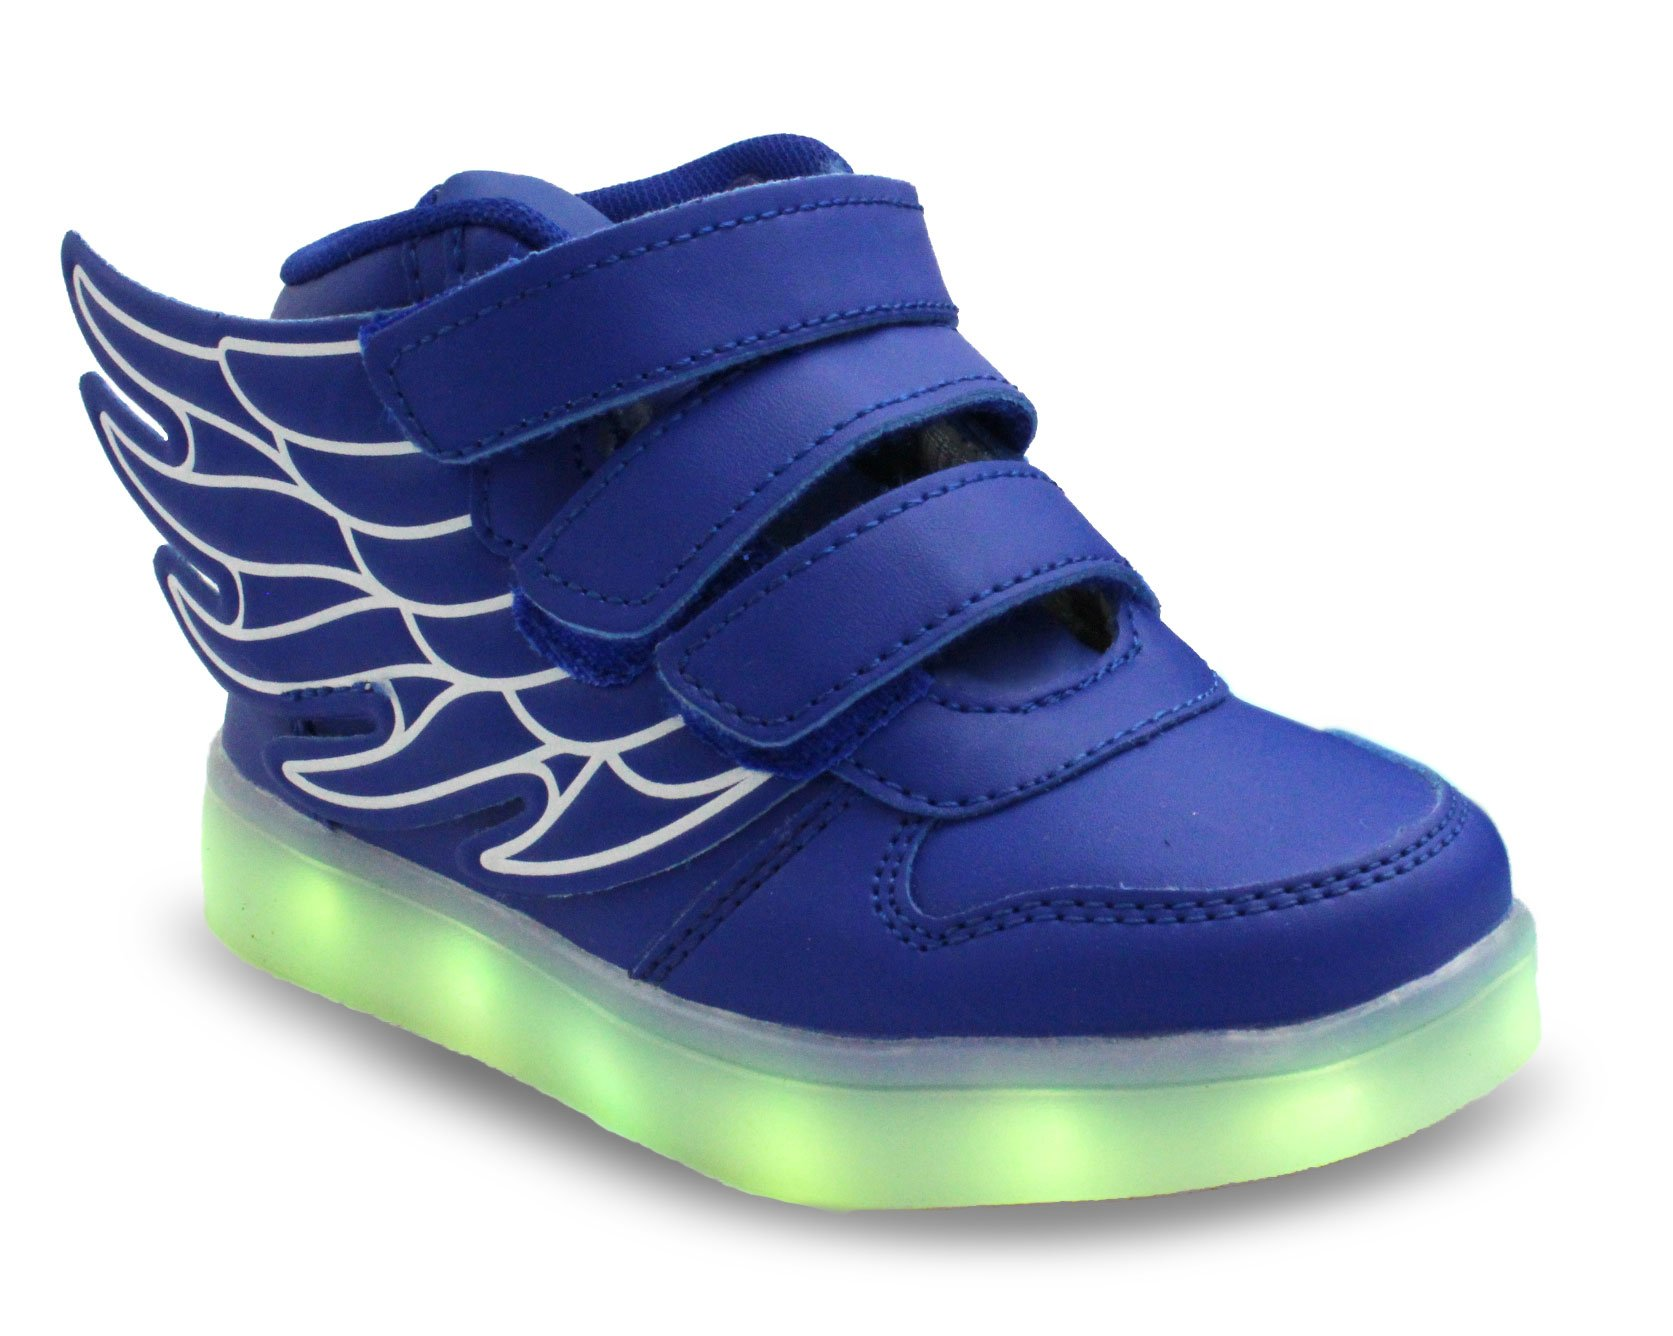 Transformania Toys Galaxy LED Shoes Light Up USB Charging High Top Wings Kids Sneakers (Blue) 10